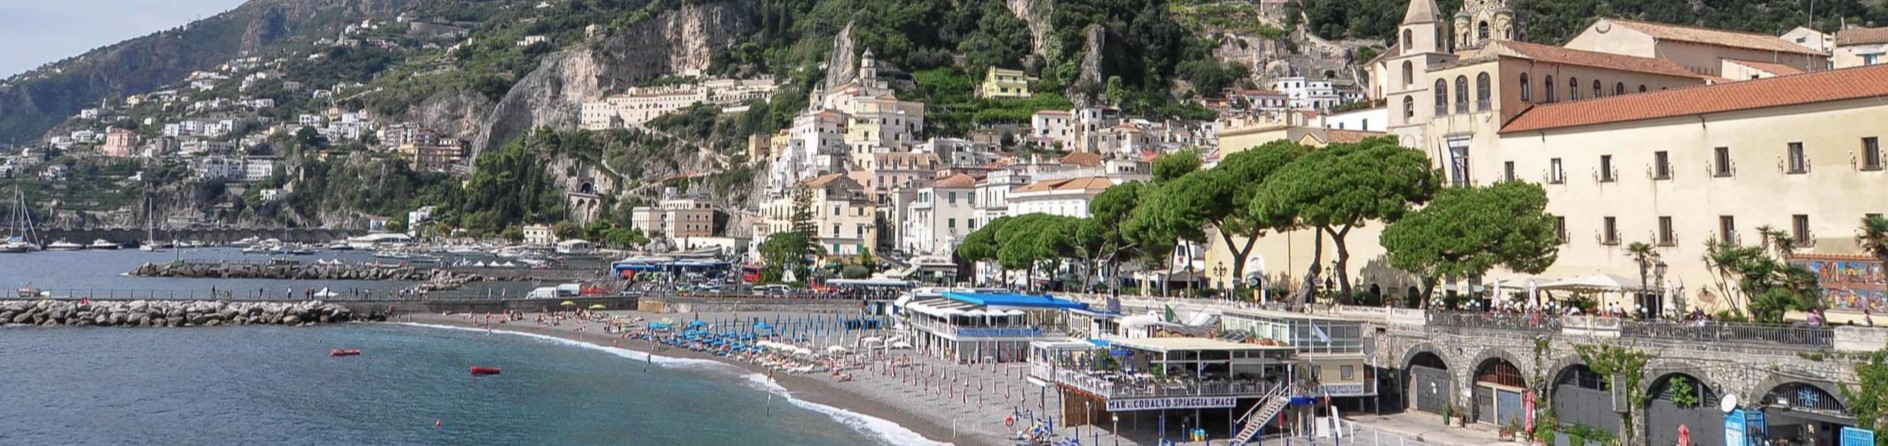 The Best Restaurants in the Amalfi Coast